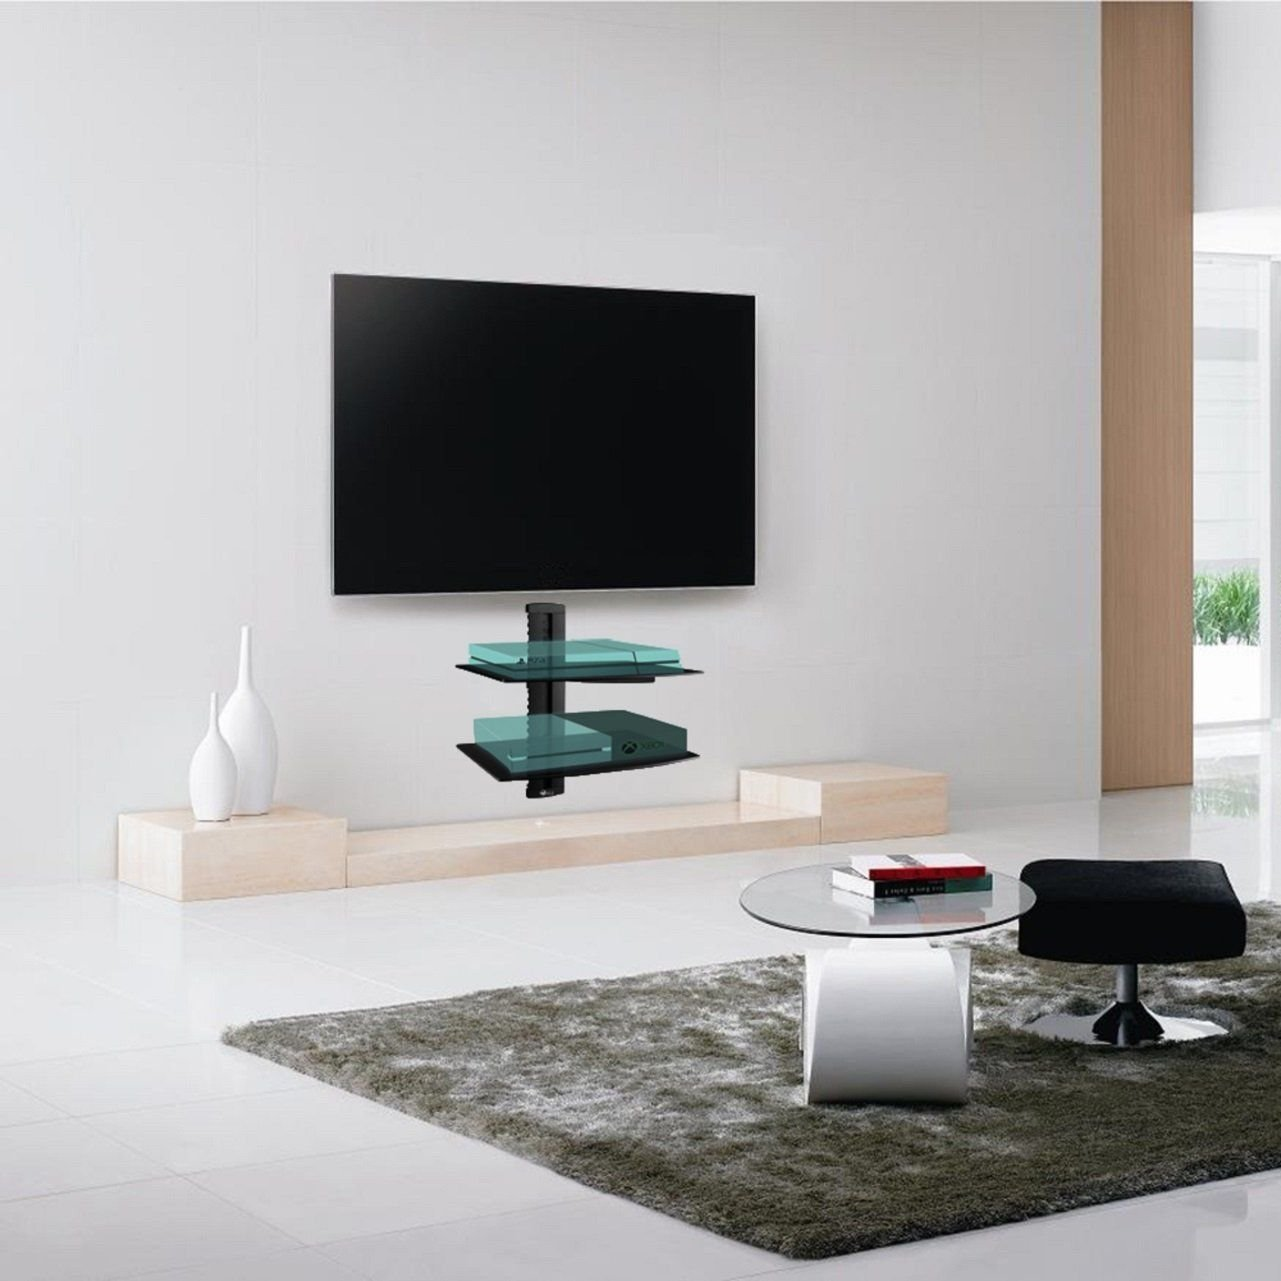 box bluray shelf floating with tv pin wall dvd mount installation glass led for cable and